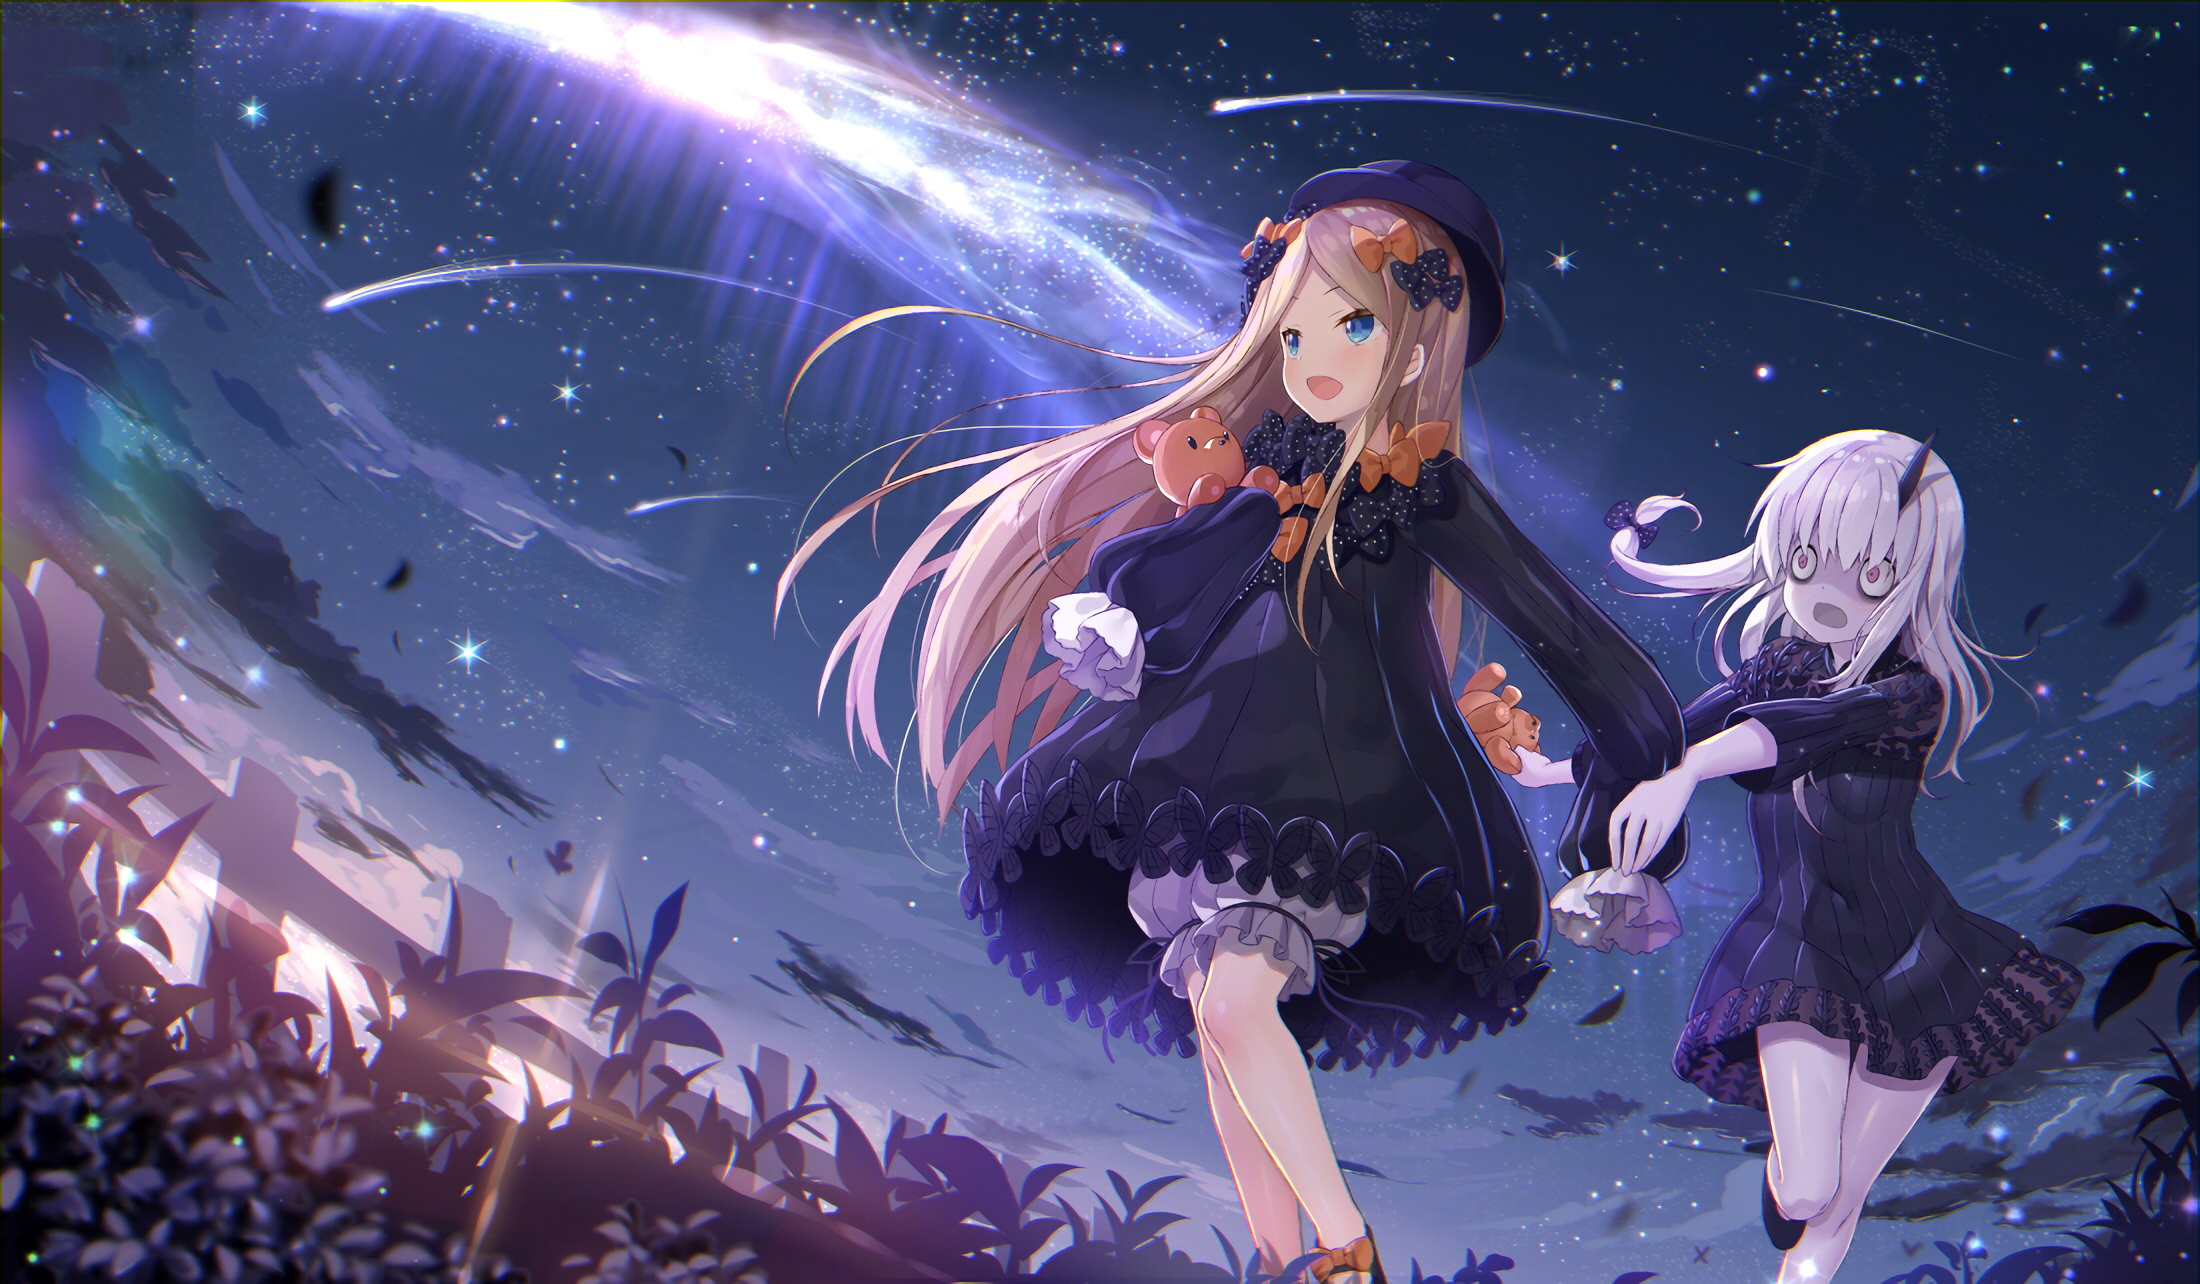 108 Abigail Williams Fate Grand Order Hd Wallpapers Background Images Wallpaper Abyss